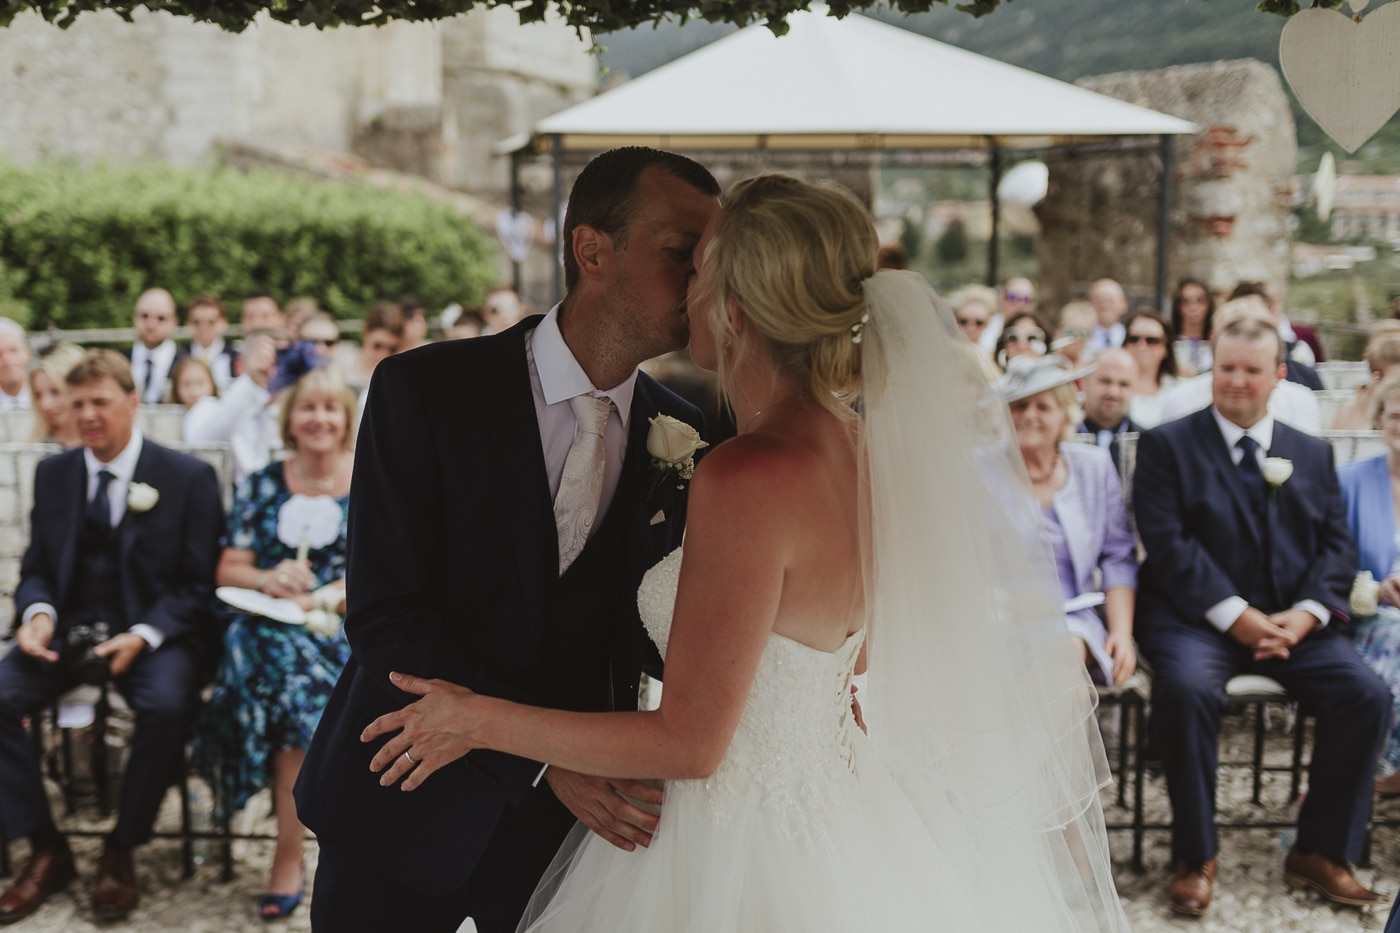 Bride with veil in her hair kisses husband in suit and white tie with flower in front of happy wedding guests